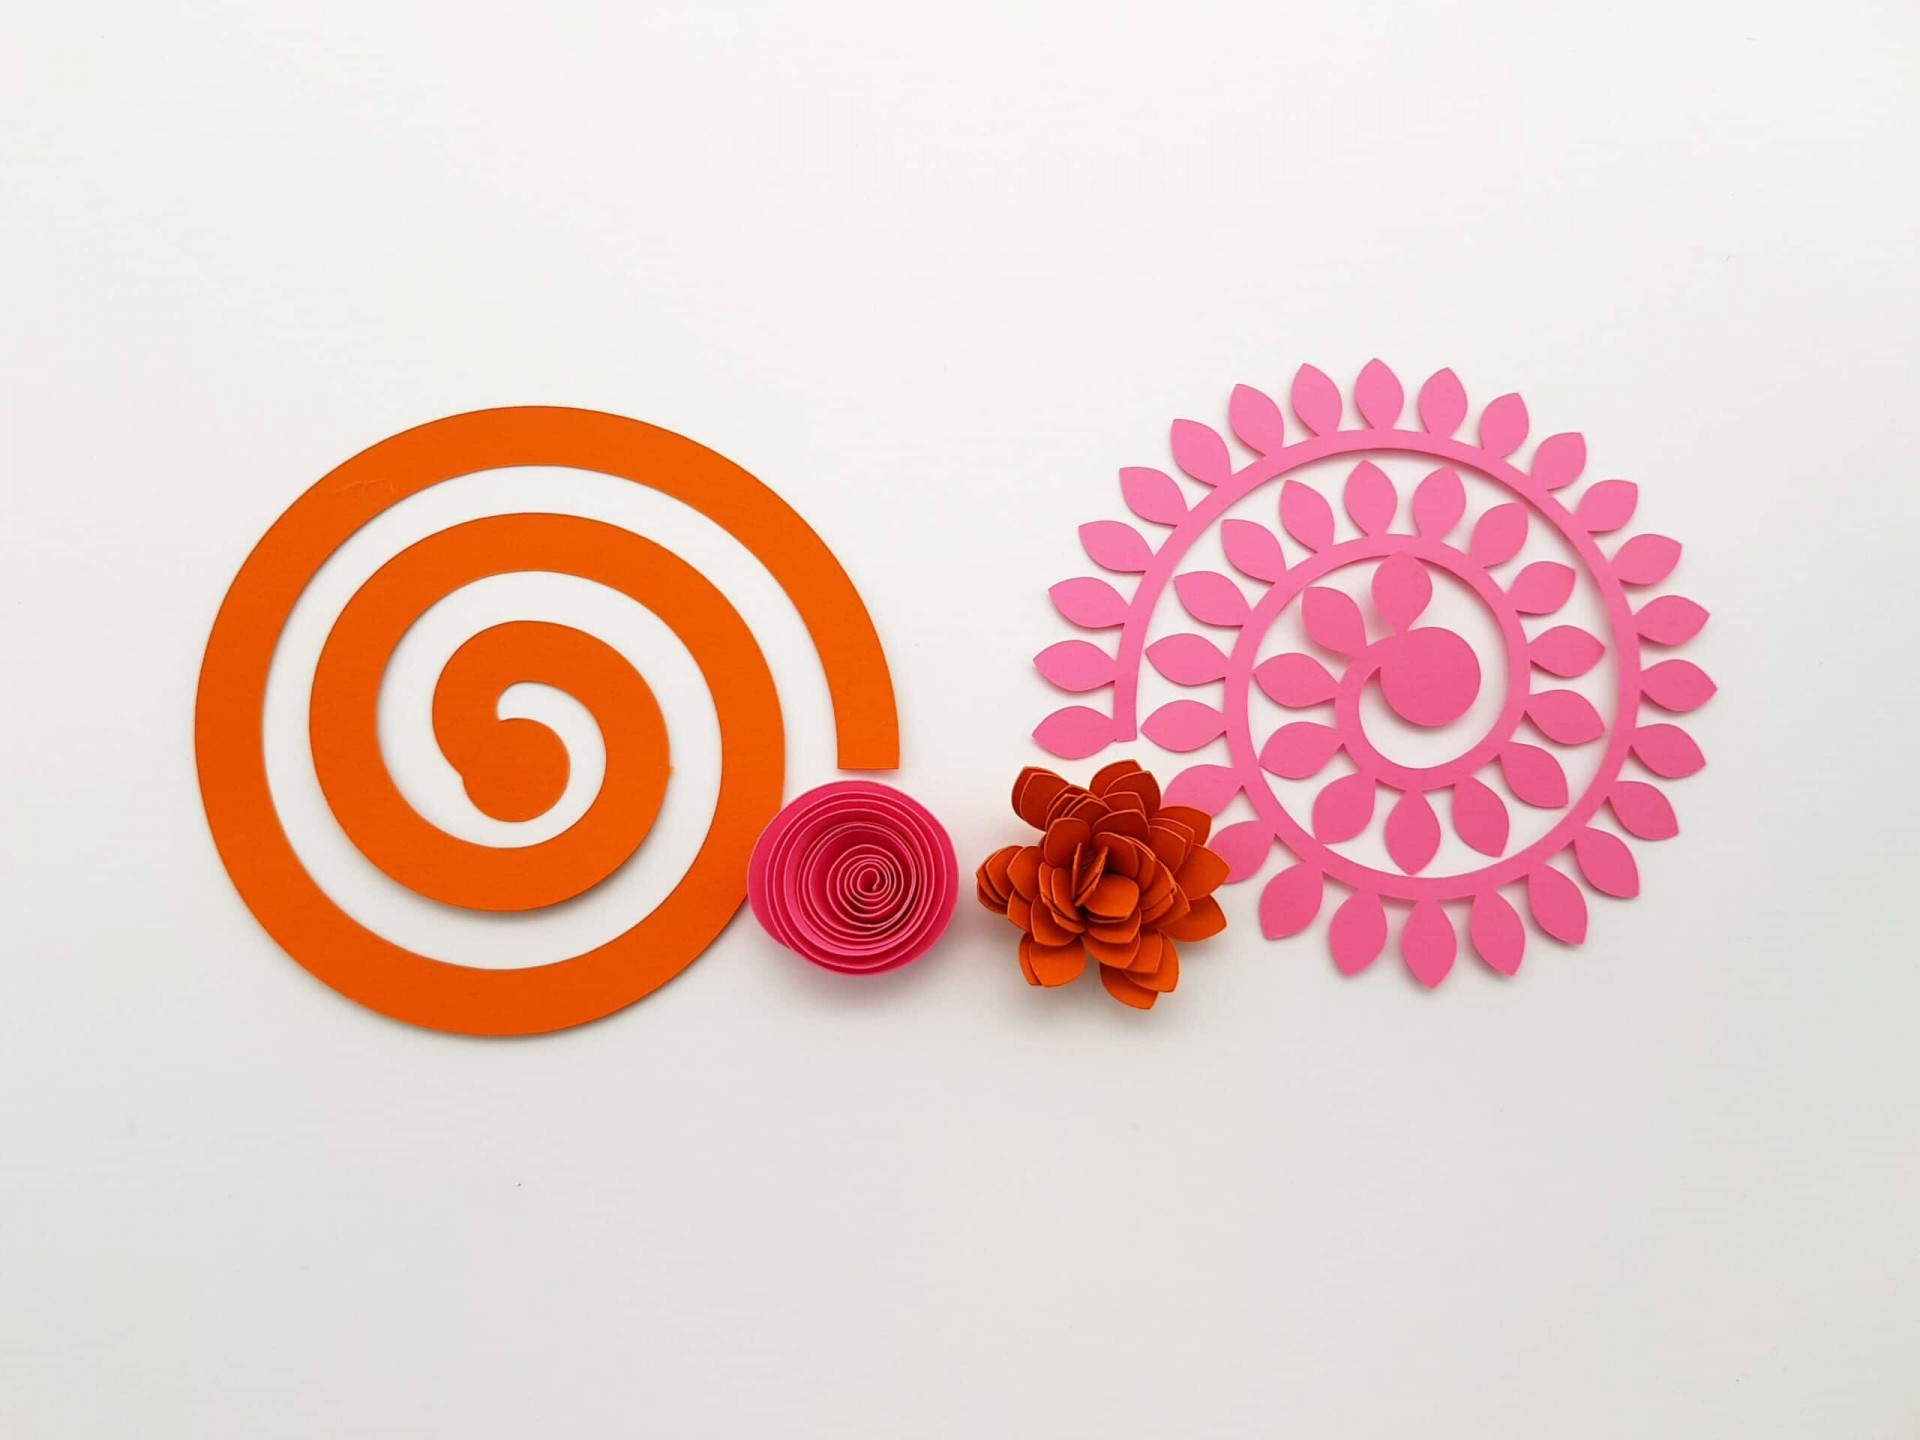 006 Unique Free Rolled Paper Flower Template For Cricut Image 1920